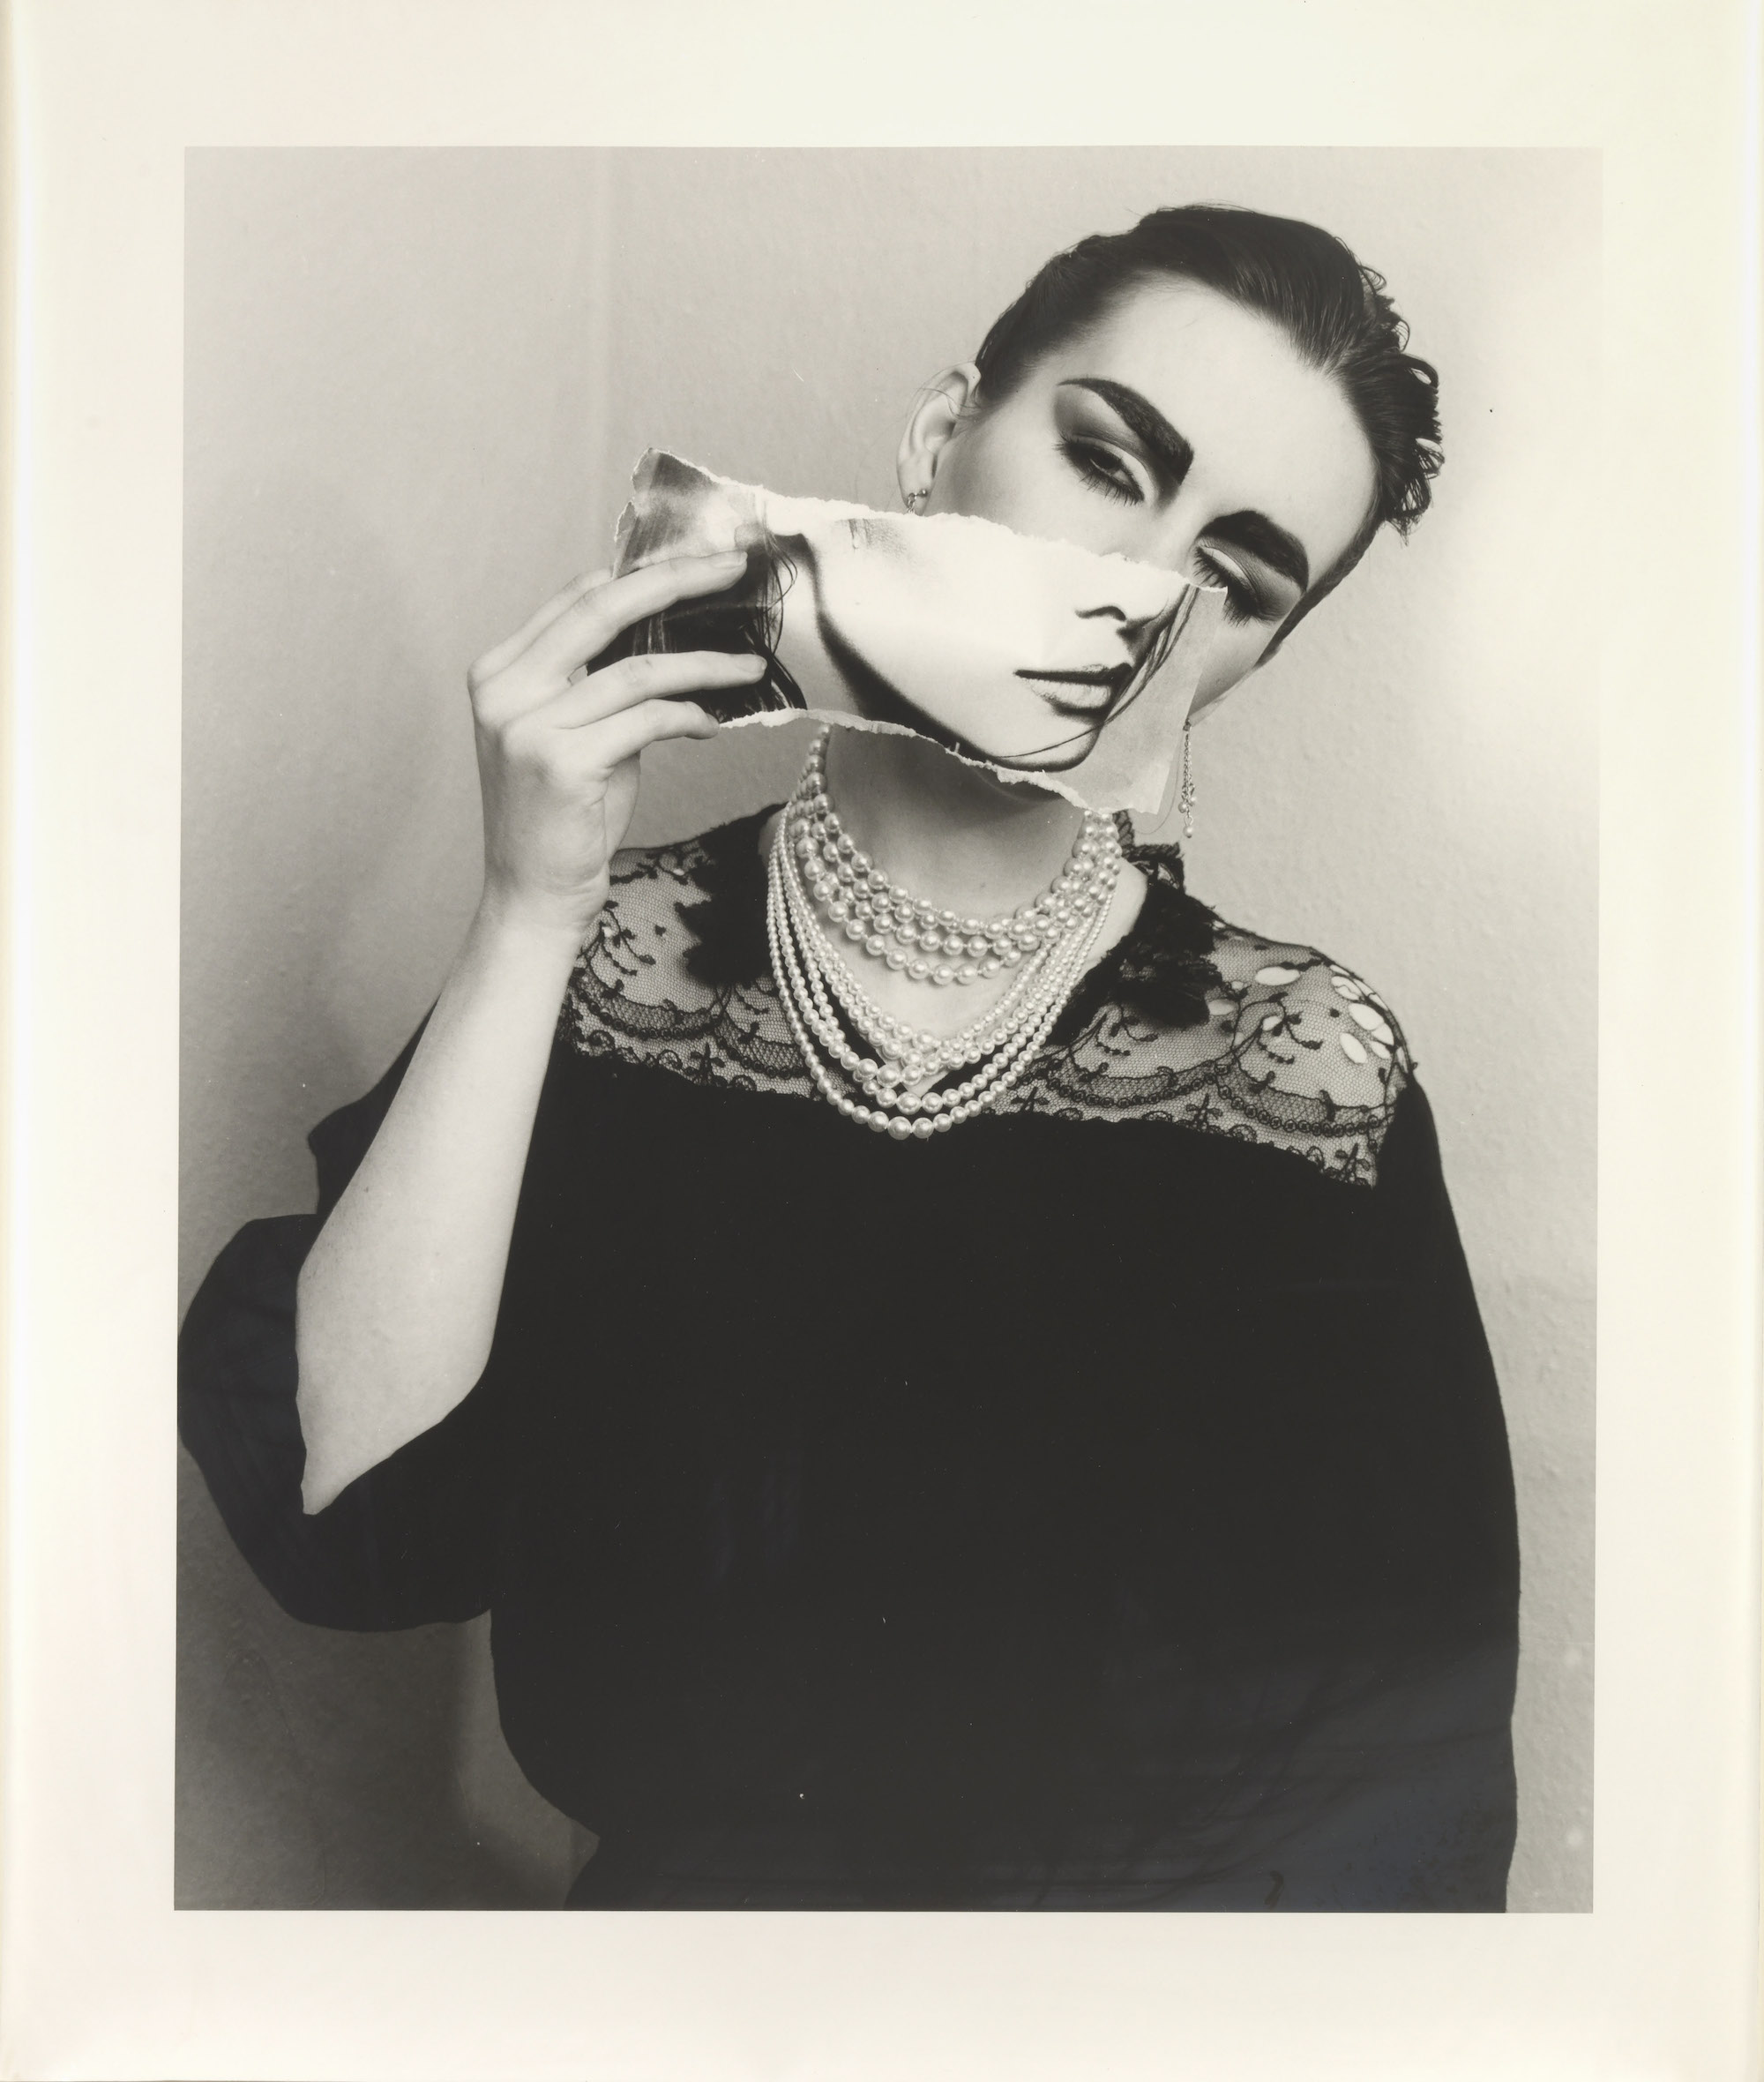 Linder, She/She, 1981, printed 2007 © Linder. Courtesy Fitzwilliam Museum